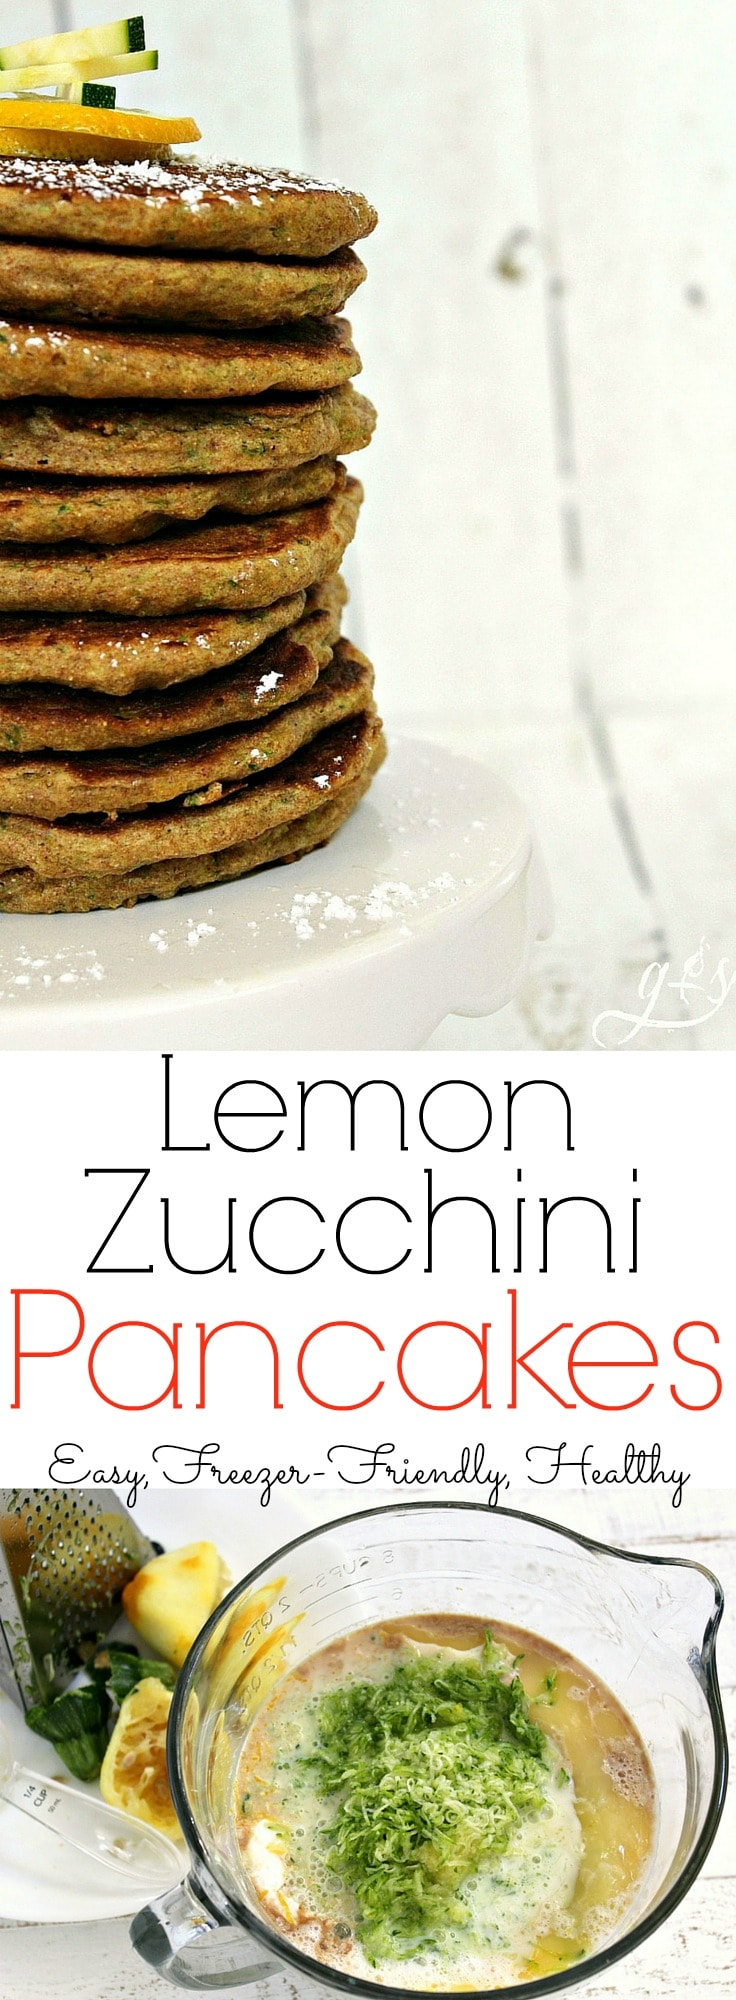 The Best Lemon Zucchini Pancakes   This delicious recipe is perfect for an easy school day breakfast for the kids. These simple from scratch flapjacks are just what you need to make your morning easy. Try freezing half the batch of these healthy, homemade, & whole wheat pancakes to eat later. The combination of healthy zucchini and fresh lemon create a sweet and easy pancake perfect for any family meal!